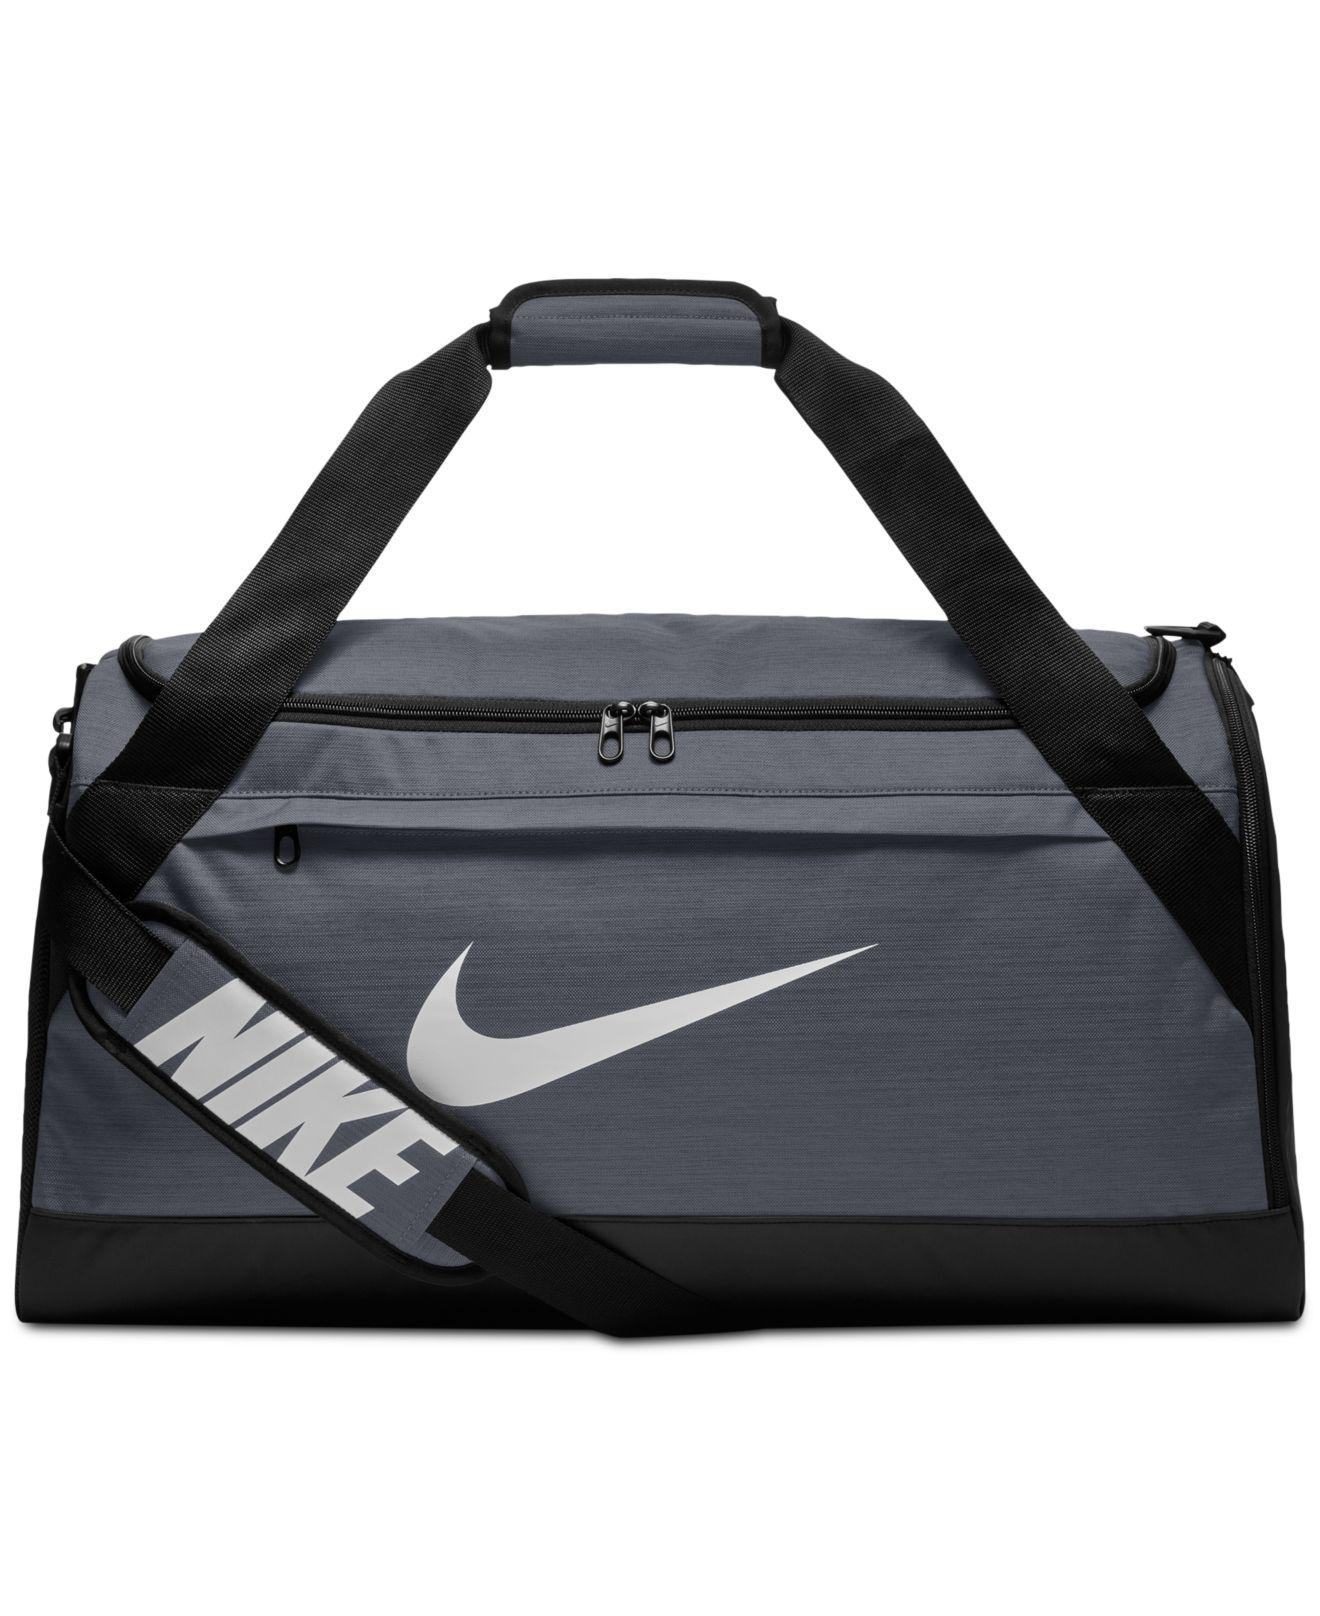 1b490ae709 Lyst - Nike Logo Duffel Bag for Men